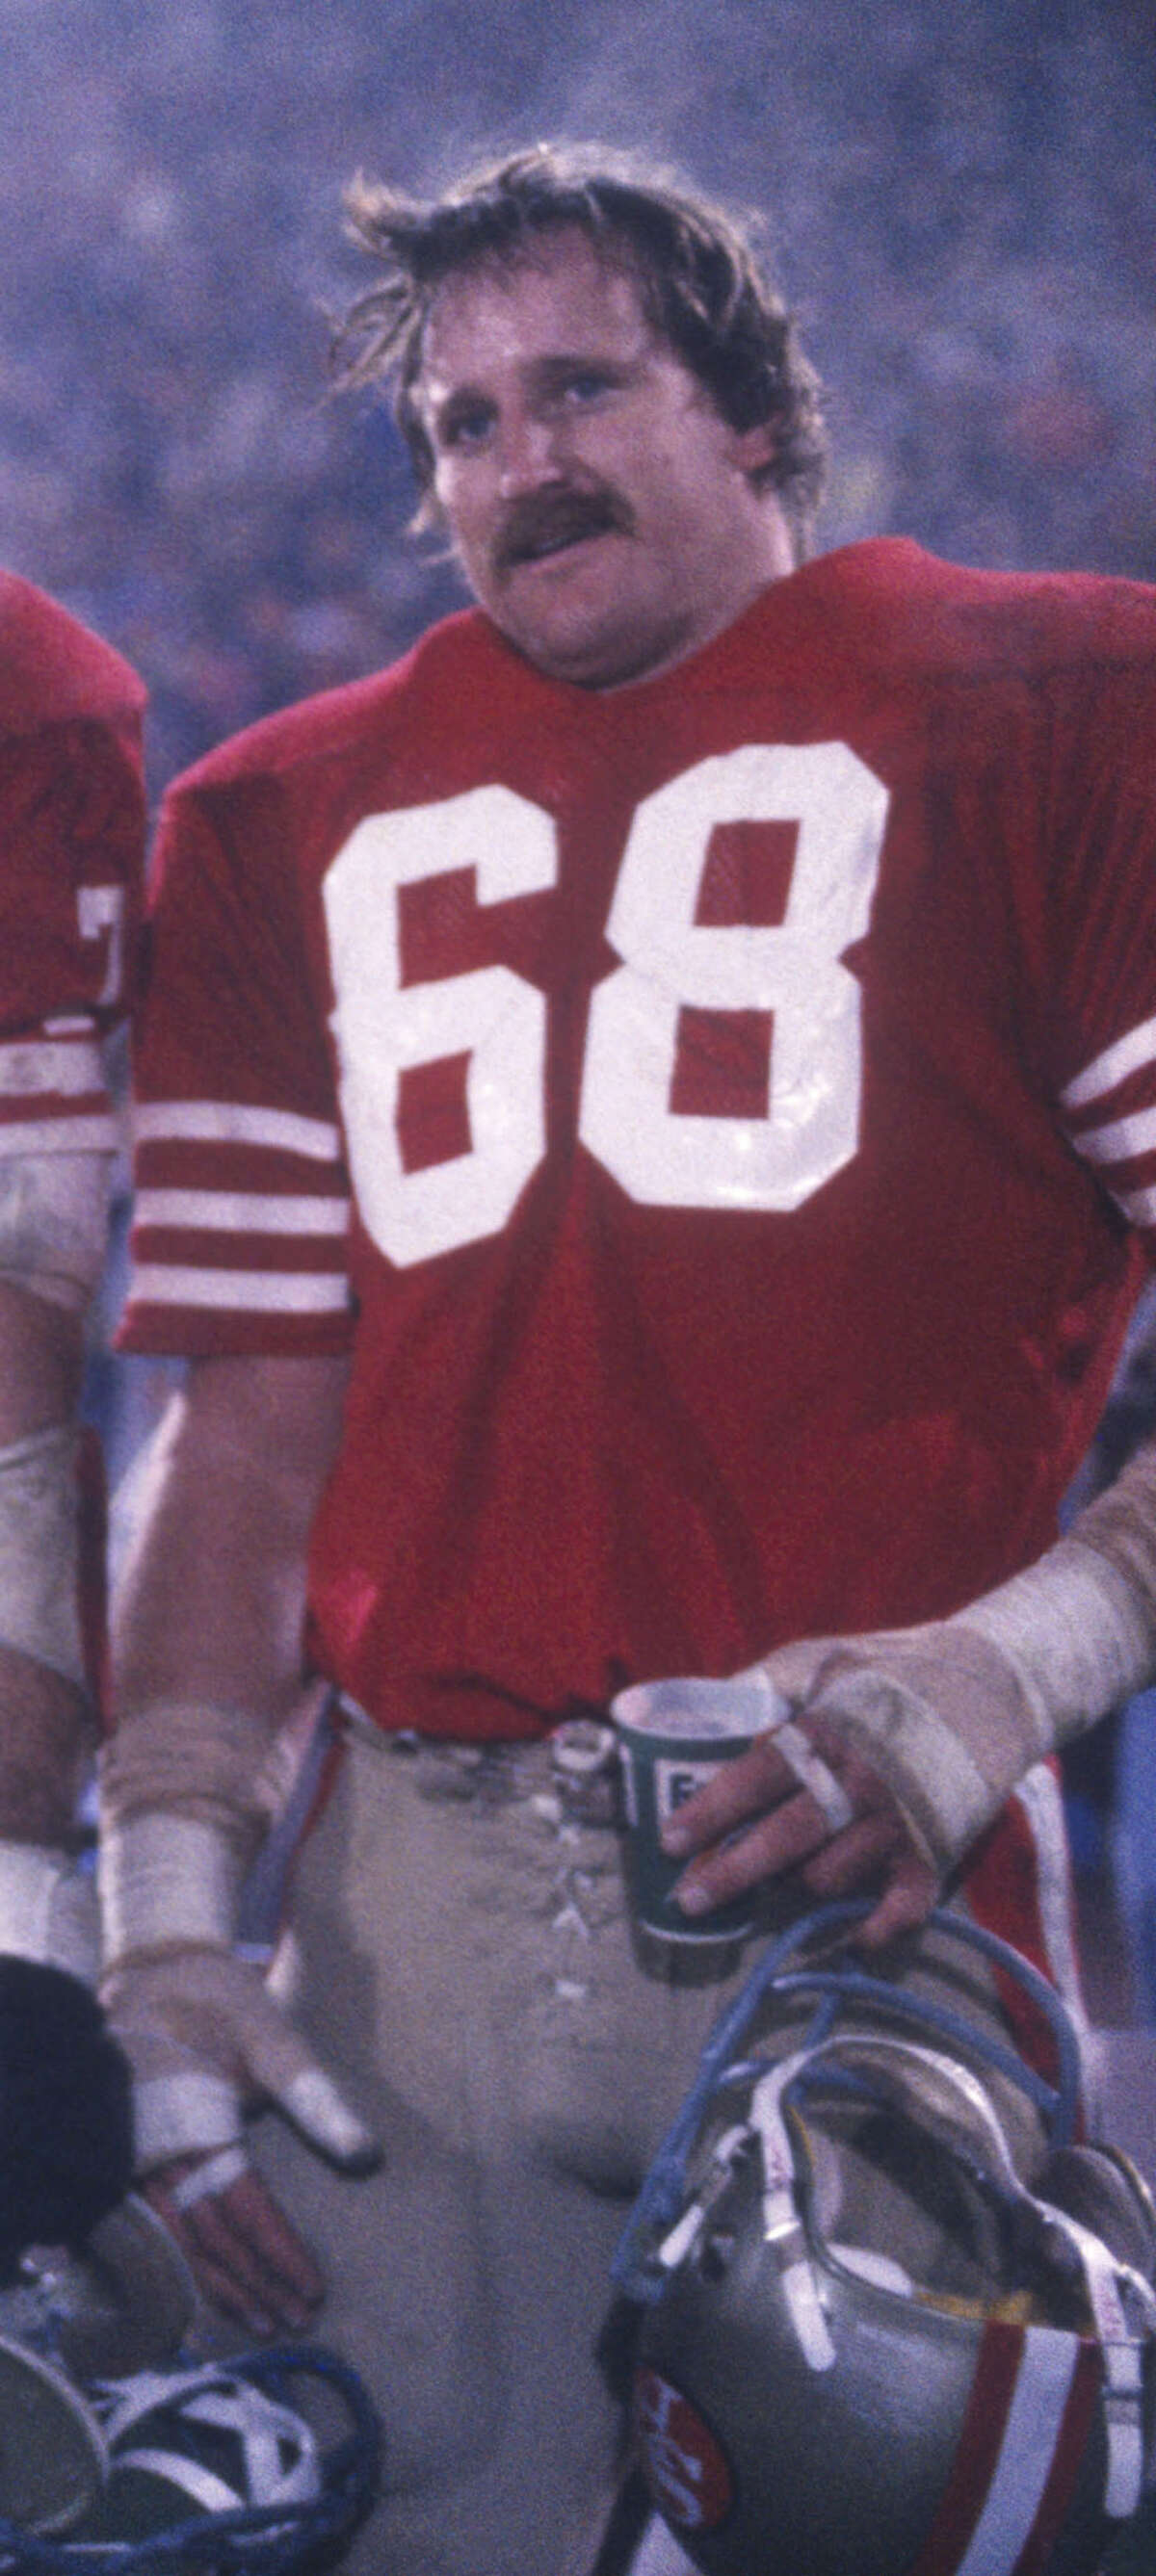 John Ayers, Carrizo Springs High School Ayers, an offensive lineman, won two Super Bowls with the San Francisco 49ers: Super Bowl XVI (1982) against the Cincinnati Bengals, and Super Bowl XIX (1985) against the Miami Dolphins. As a Denver Bronco, he lost Super Bowl XXII (1988) to the Washington Redskins. PHOTO: Ayers poses during Super Bowl XIX against Miami at Stanford Stadium on Jan. 20, 1985, in Stanford, Calif.